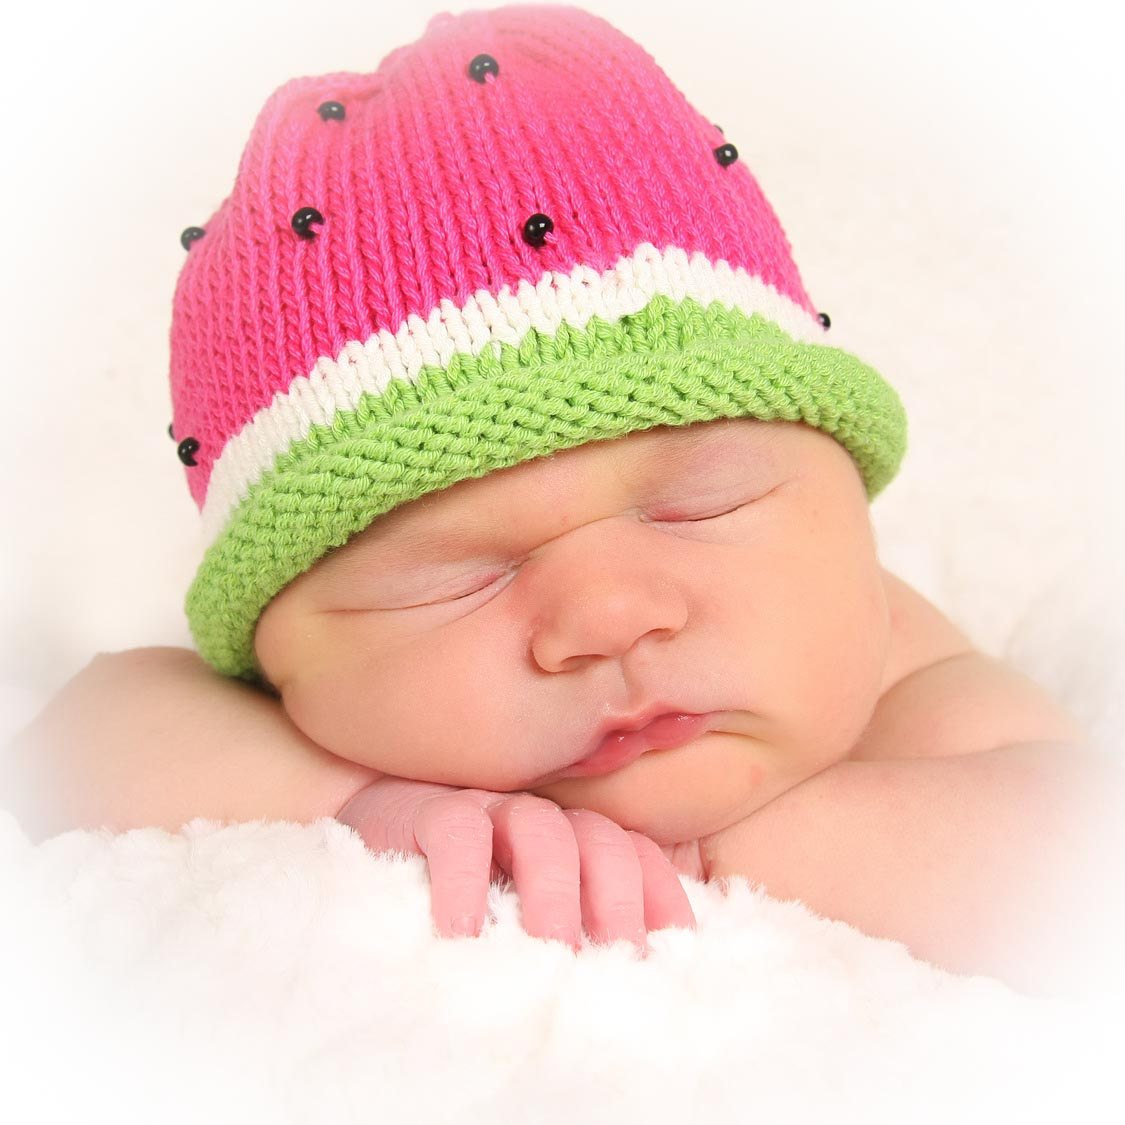 Good Knit Stitches For Hats : LOOM KNIT ELF & WATERMELON HAT PATTERNS This Moment is Good